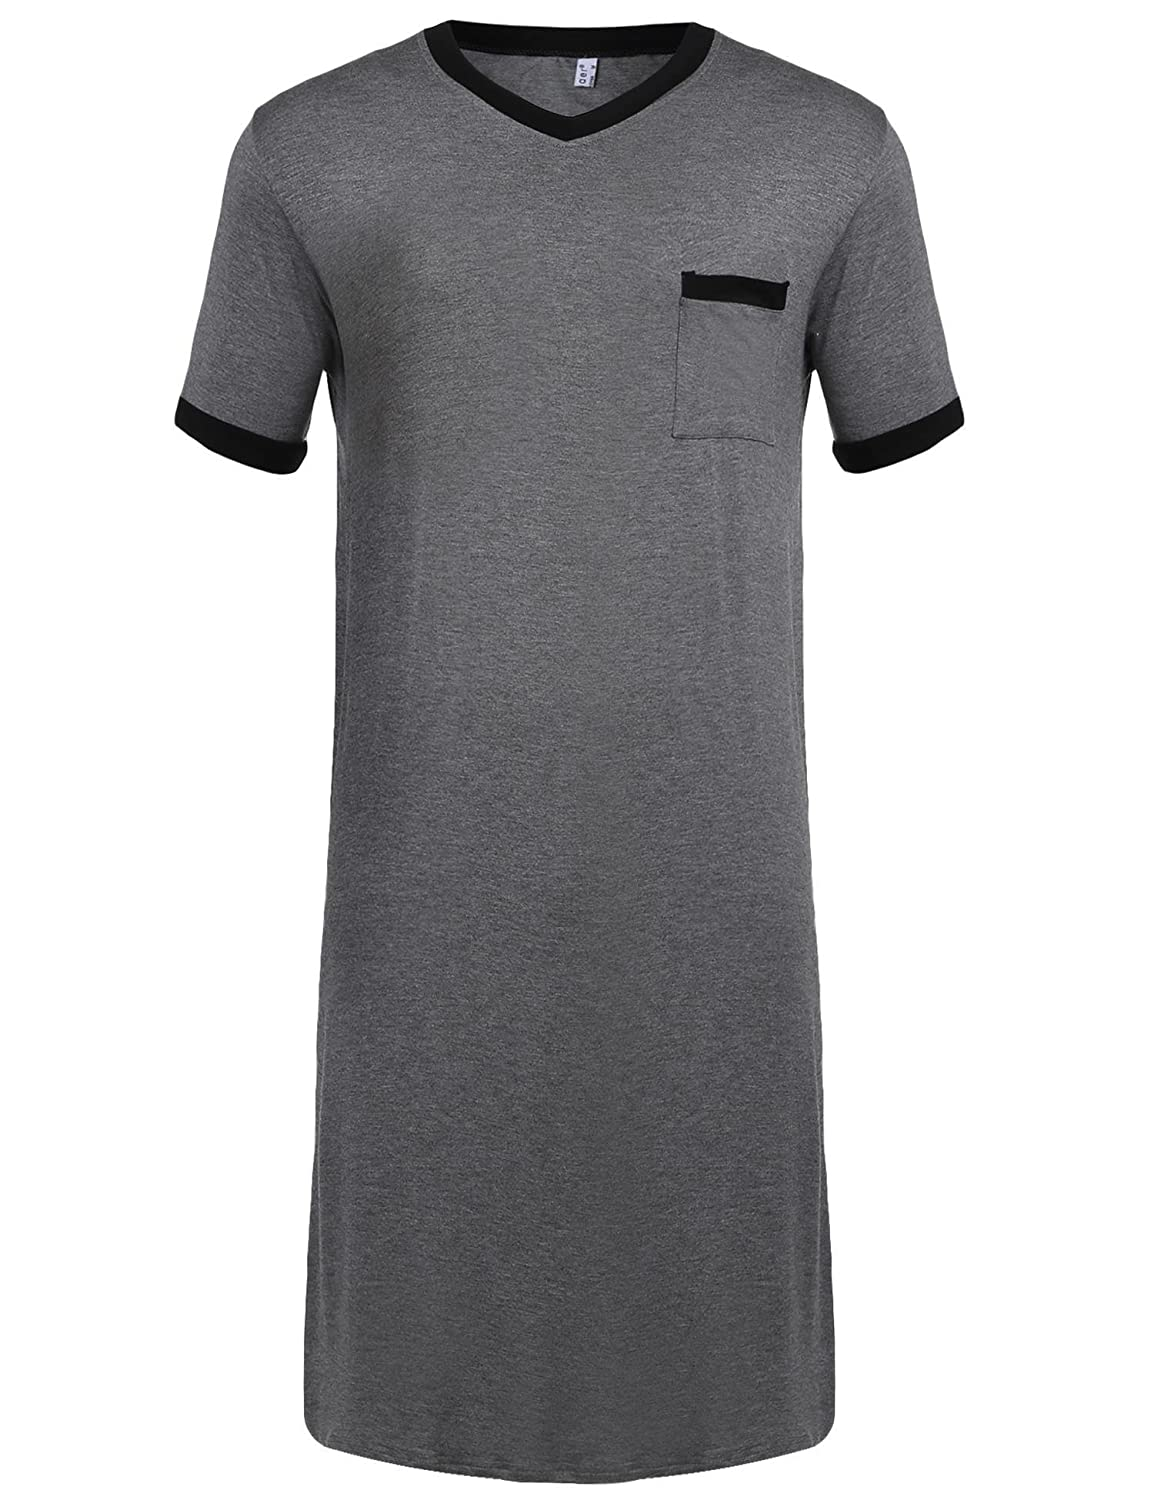 Aimage Men Short Sleeve Pajama Dress Contrast Color Loose Sleepshirt Short Nightshirt with Pocket M-XXXL